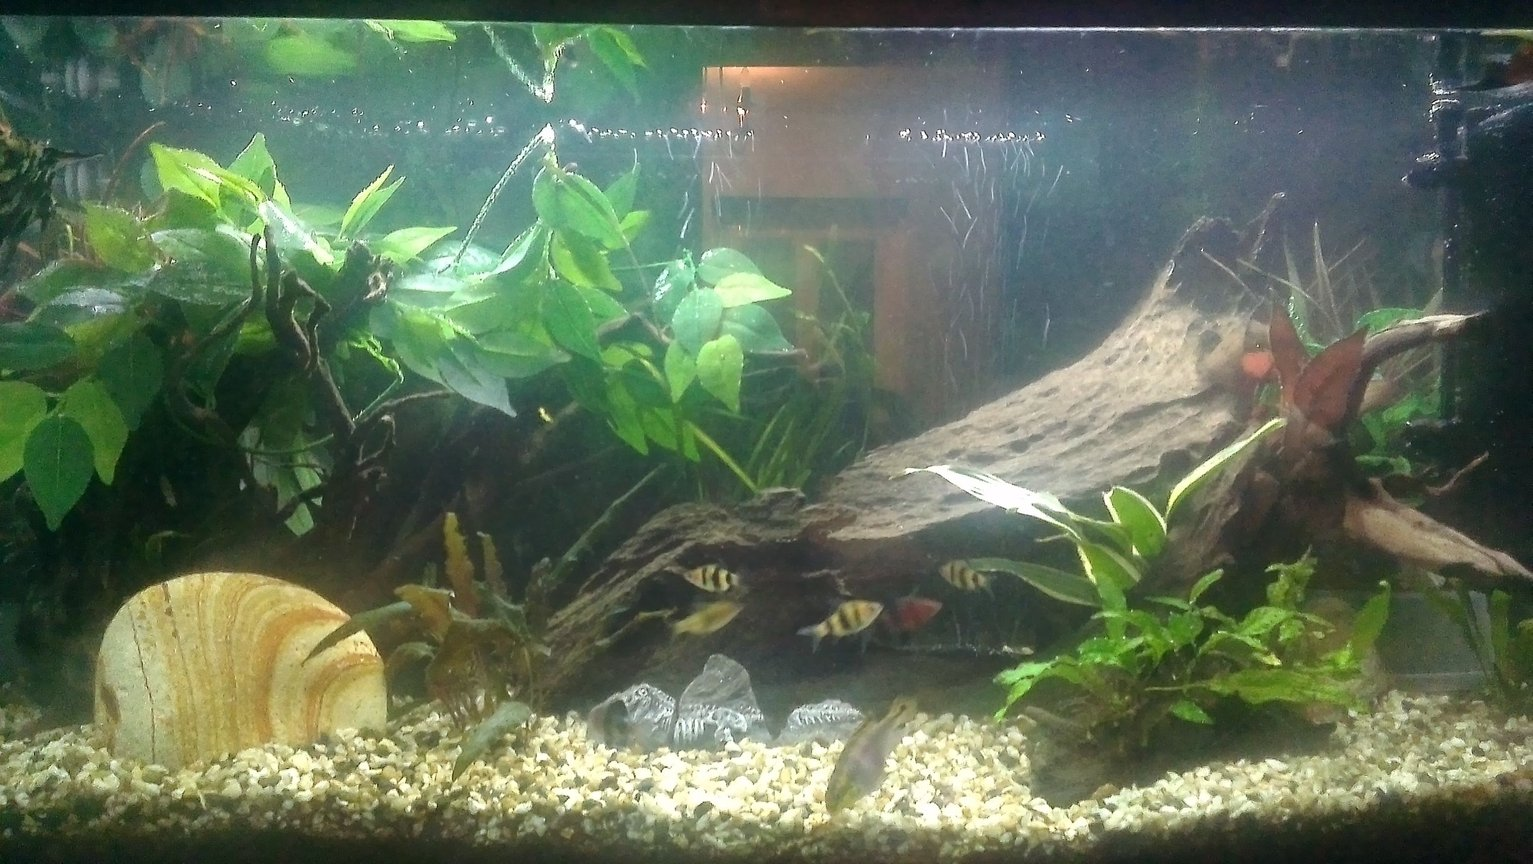 30 gallons freshwater fish tank (mostly fish and non-living decorations) - An updated version of my original tank that I had on here